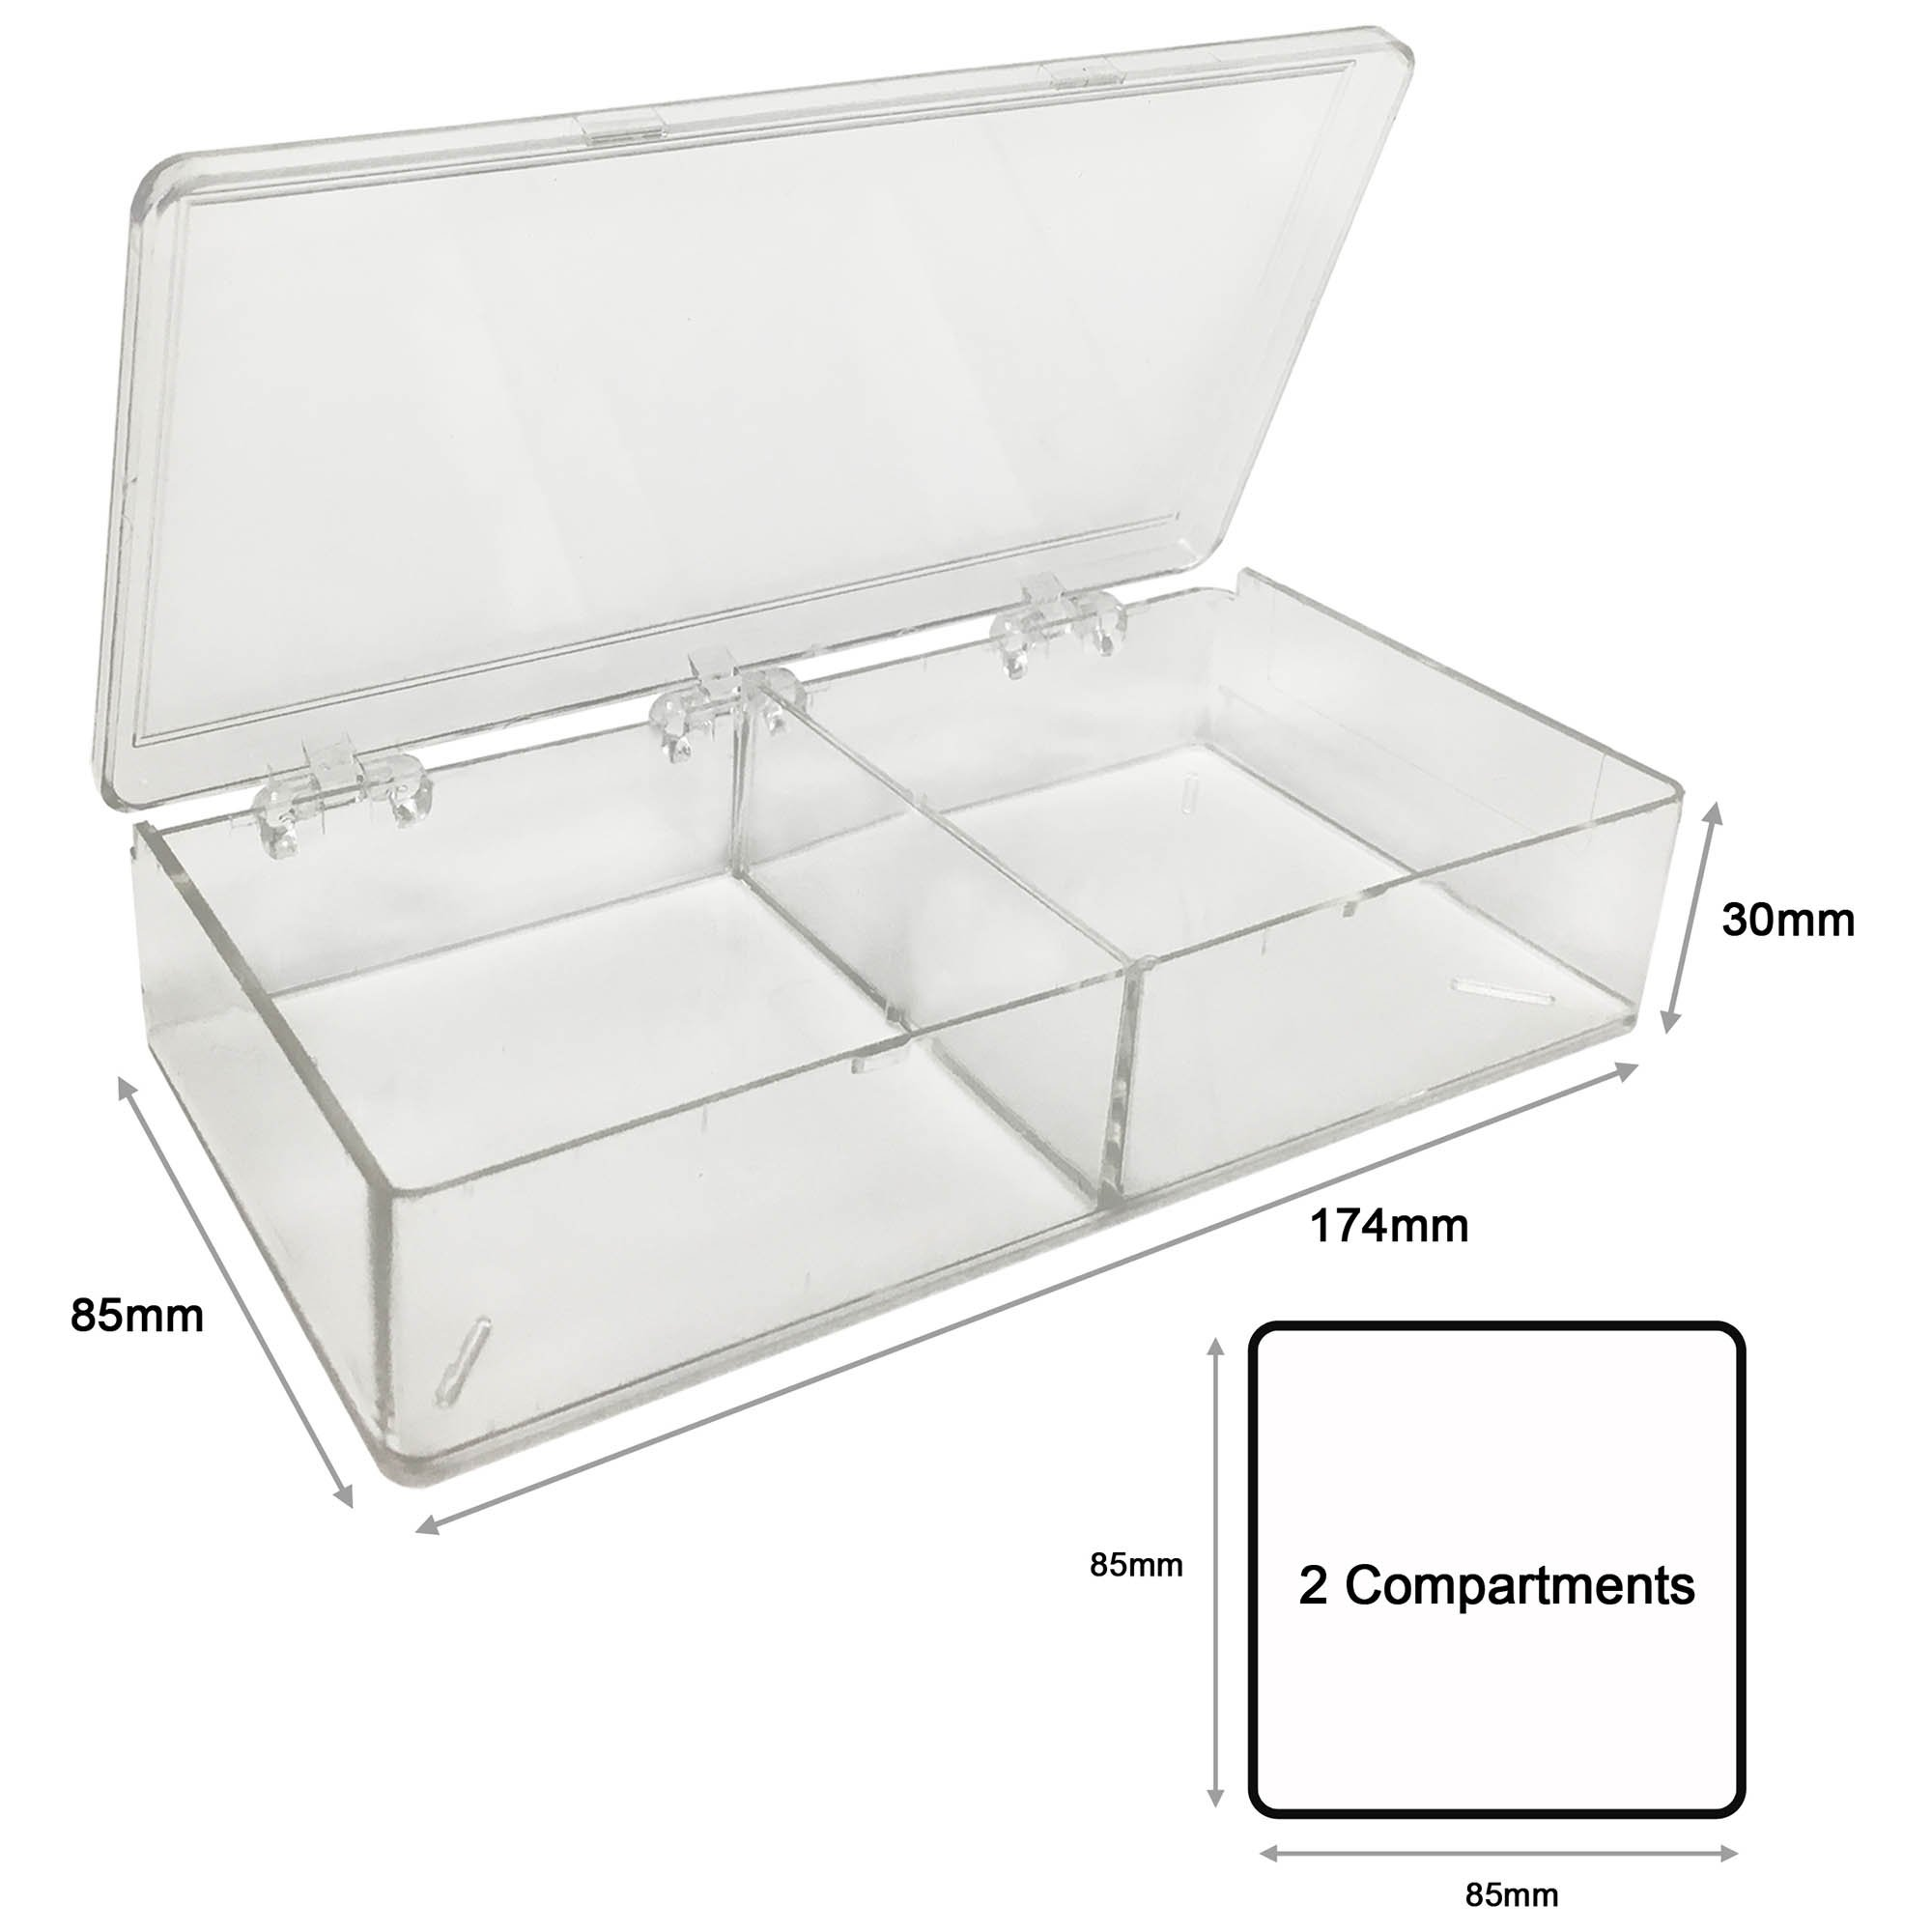 MultiBox Clear Western Blot Box - 2 Compartments 85 x 85 x 30mm Each (Pack of 6)